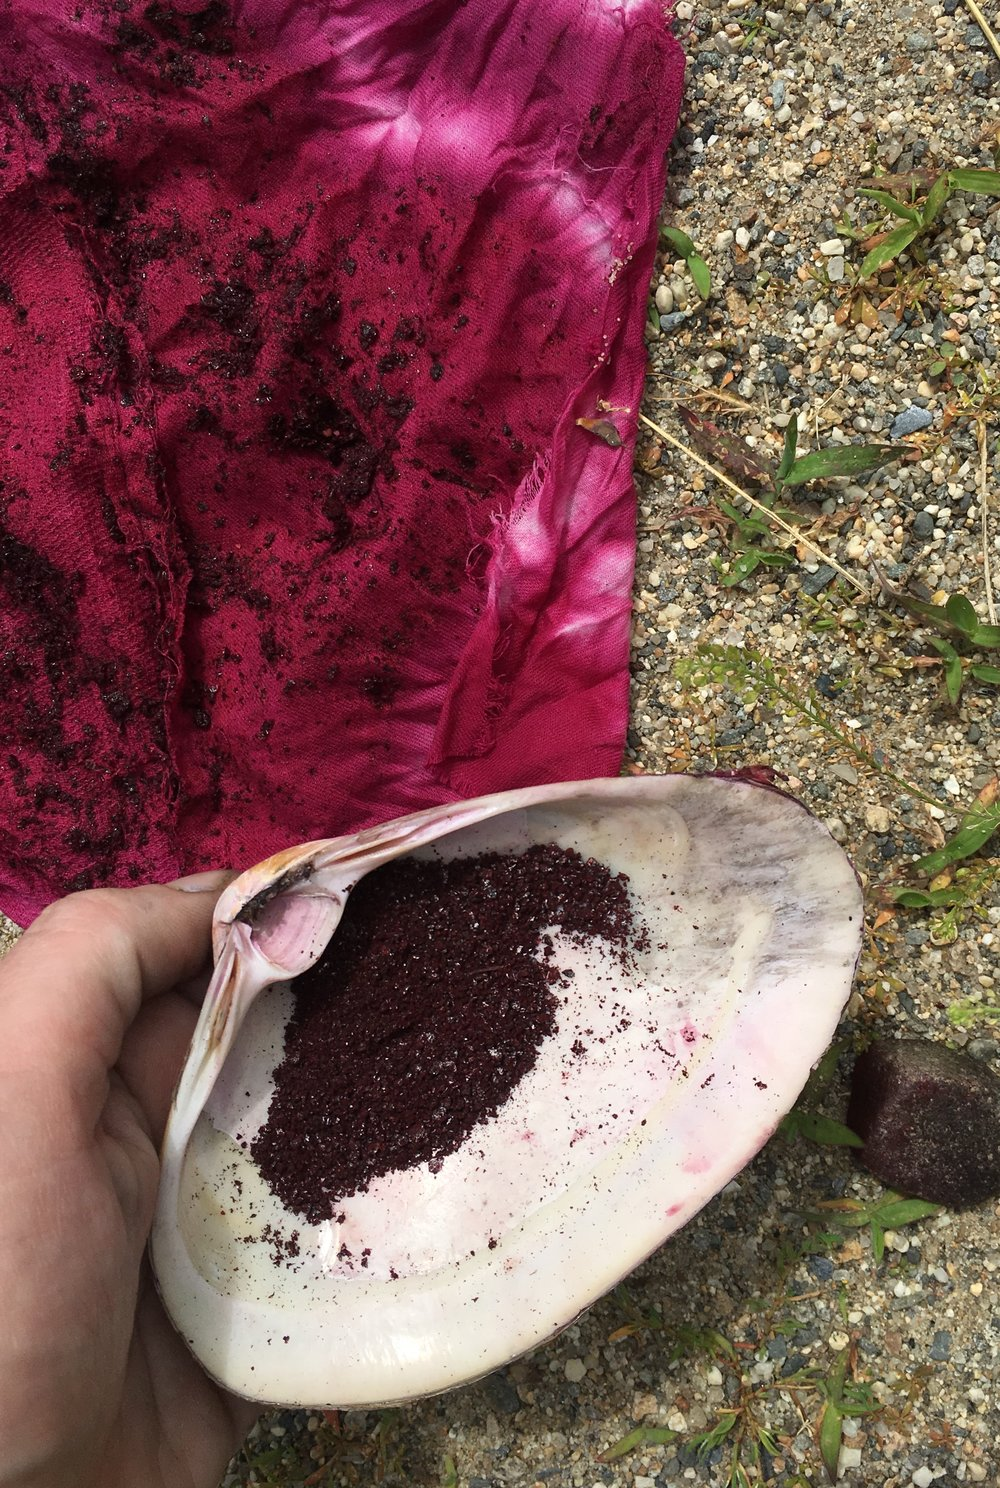 Grinding cochineal in a clamshell to make that vivid fuchsia